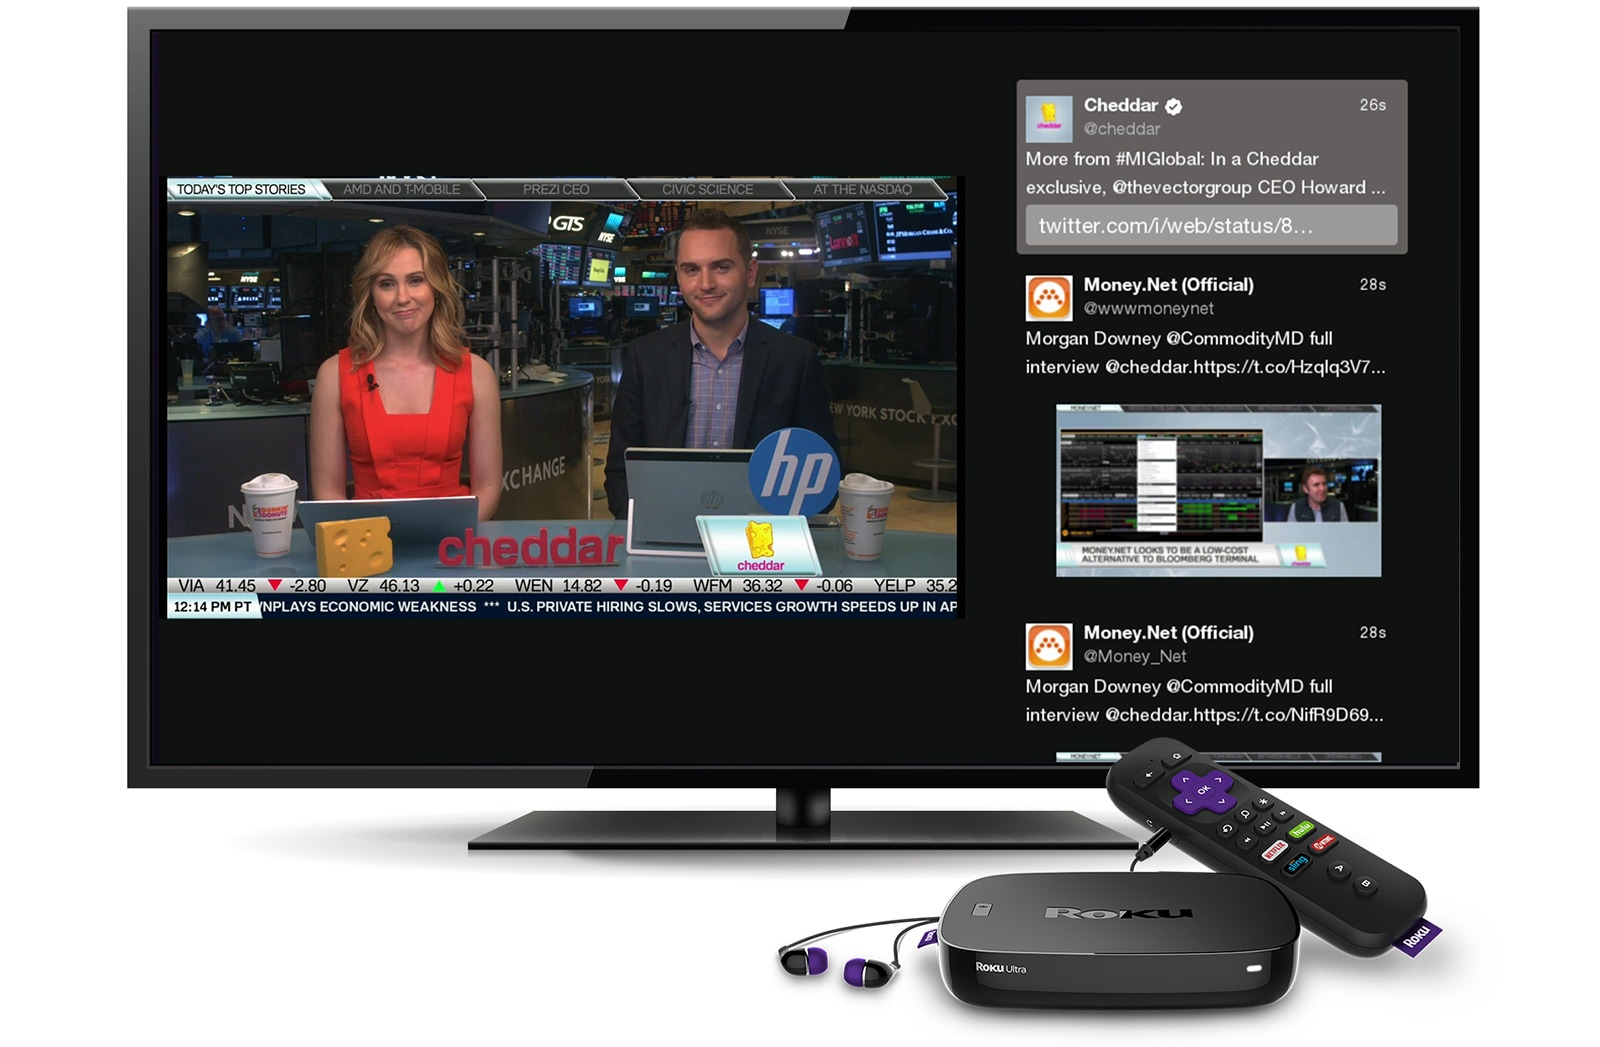 roku 39 s twitter channel brings livestreams to your living room. Black Bedroom Furniture Sets. Home Design Ideas